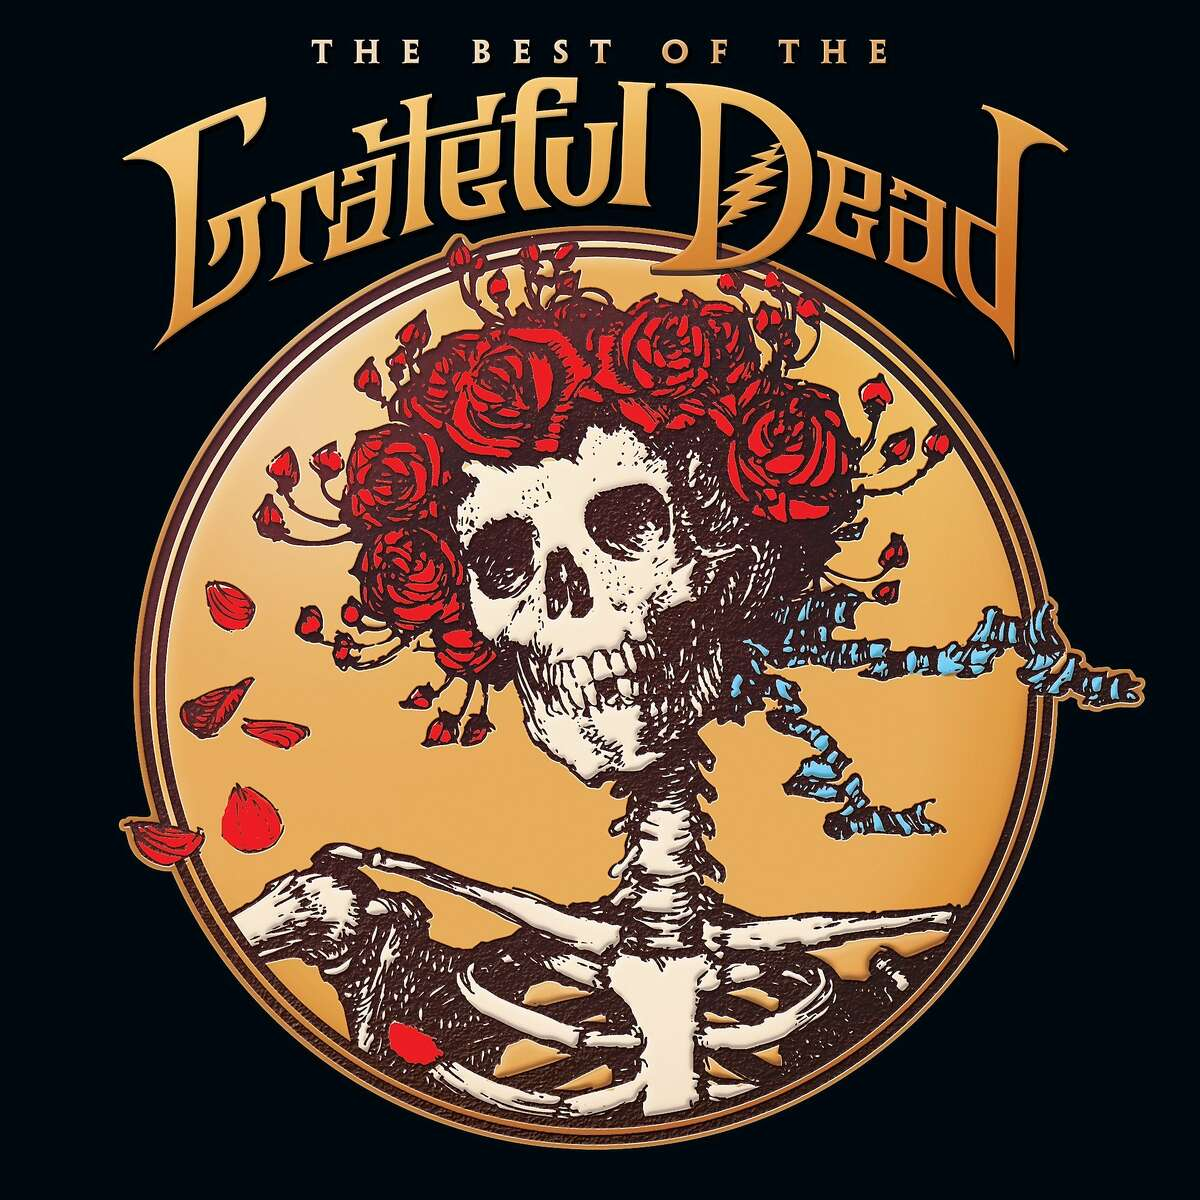 """""""The Best of the Grateful Dead."""""""